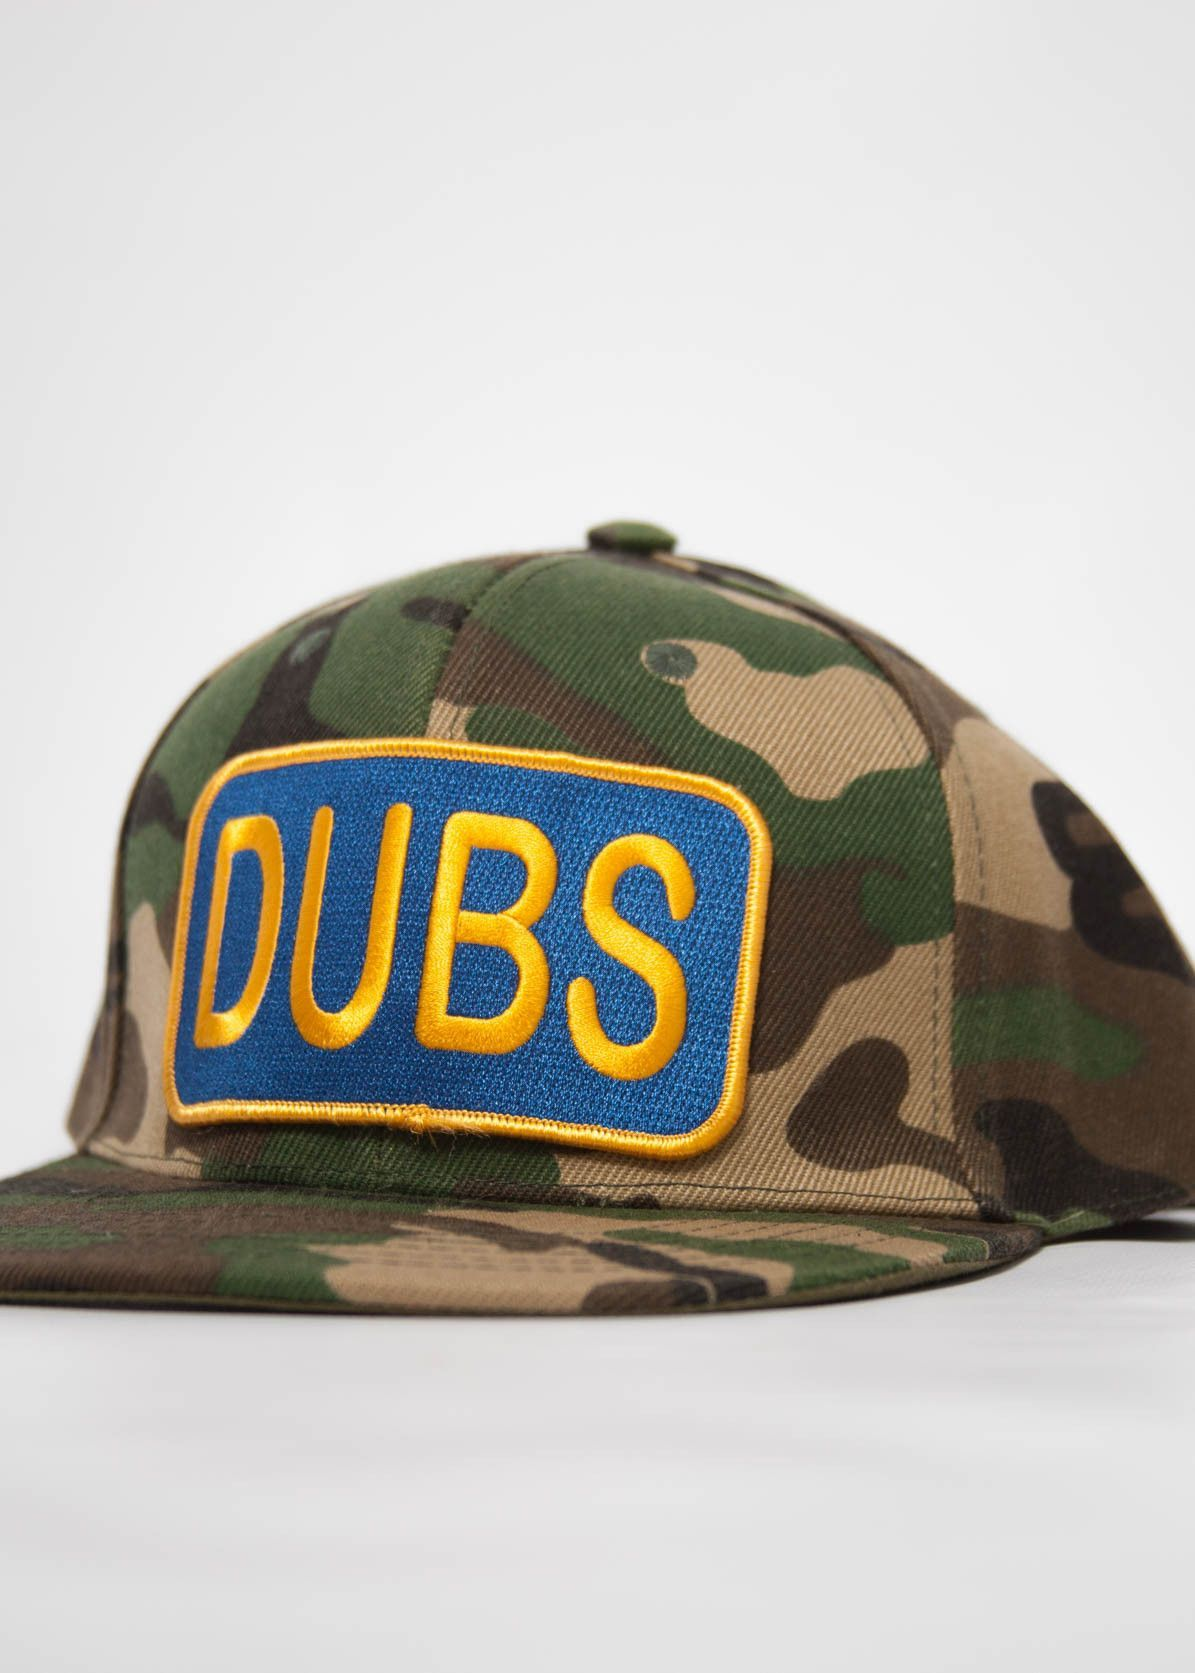 55a8713c17f71 90 s style snap back hat  Warriors  GoldenStateWarriors  StephCurry  Curry   Dubs  DubNation